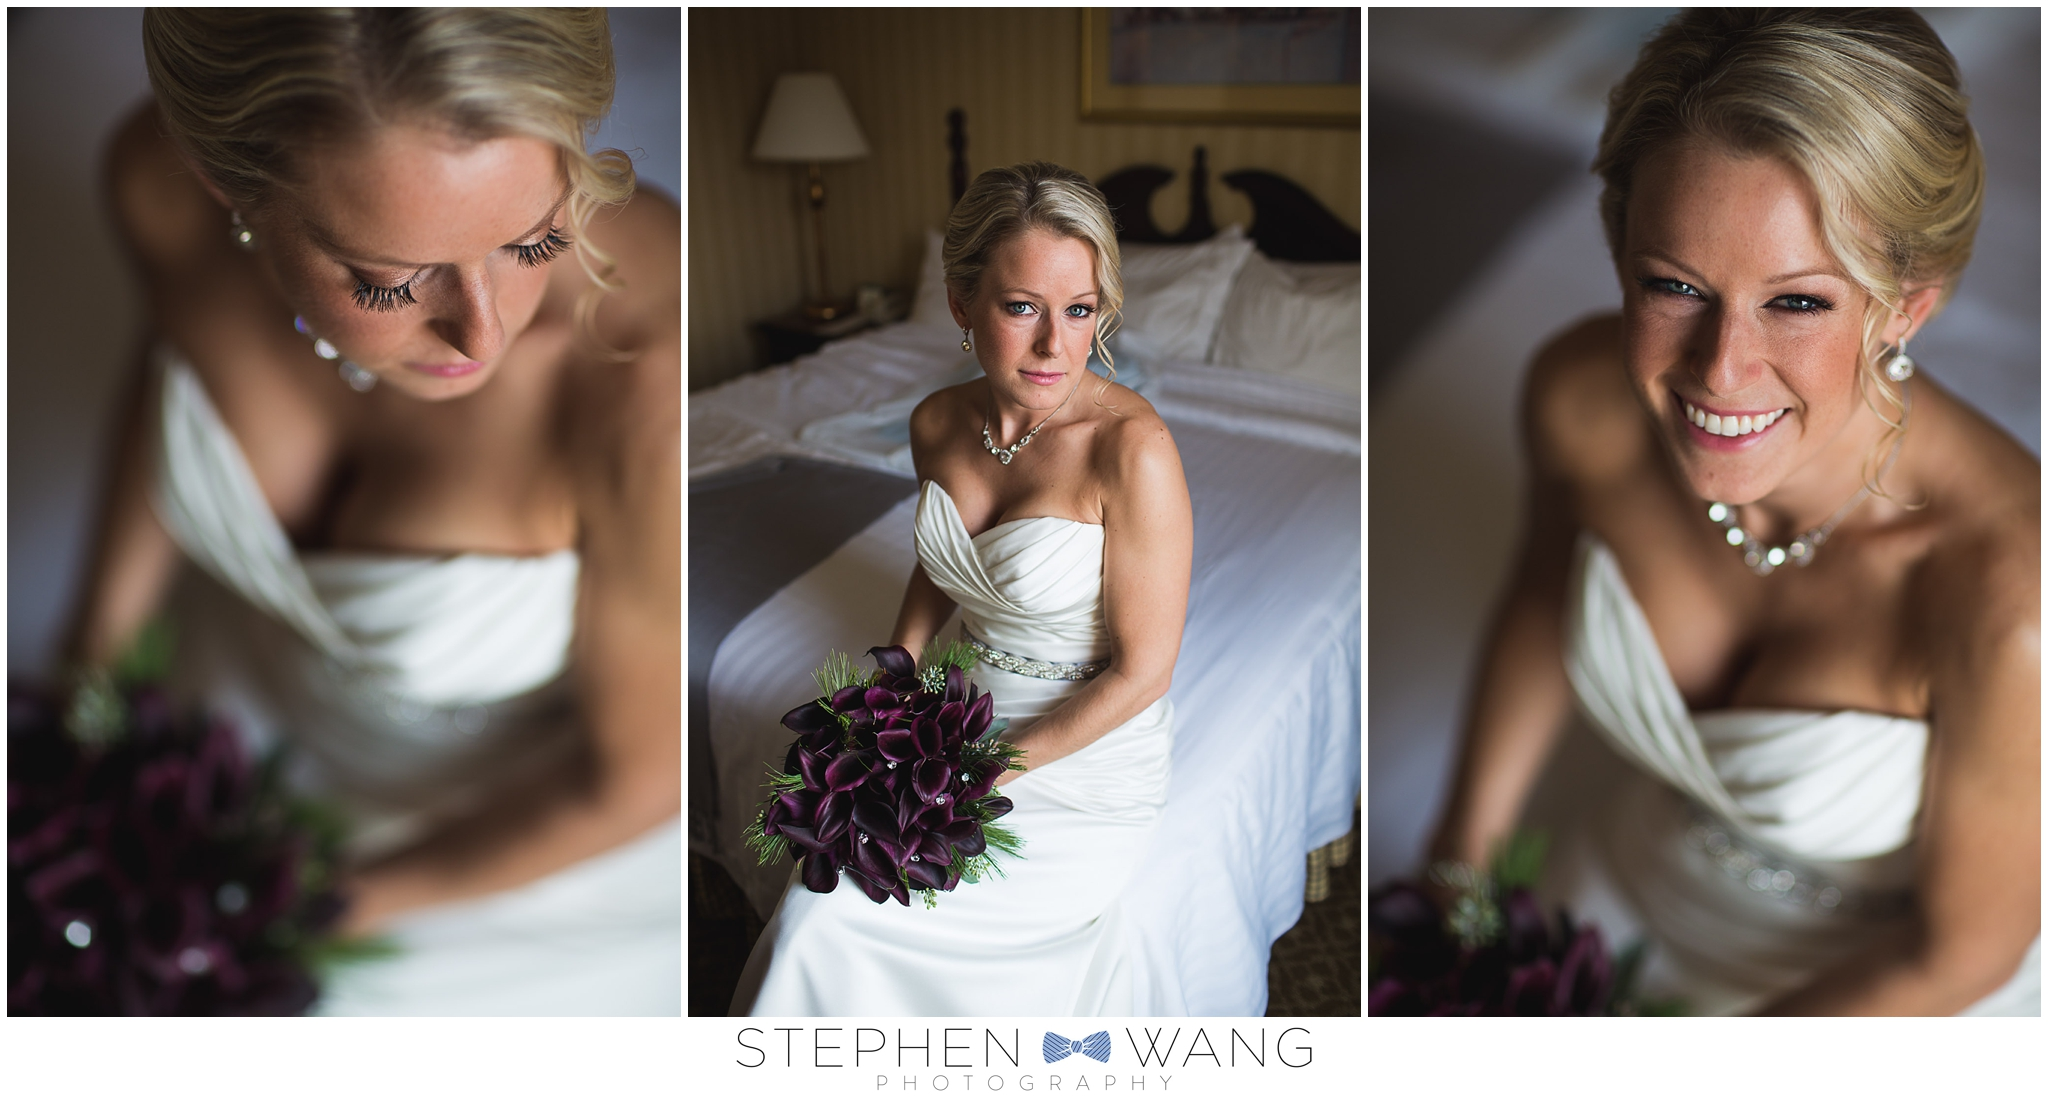 Stephen Wang Photography winter wedding connecticut east haddam riverhouse haddam ct middletown inn christmas wedding photography connecticut photographer-01-15_0007.jpg